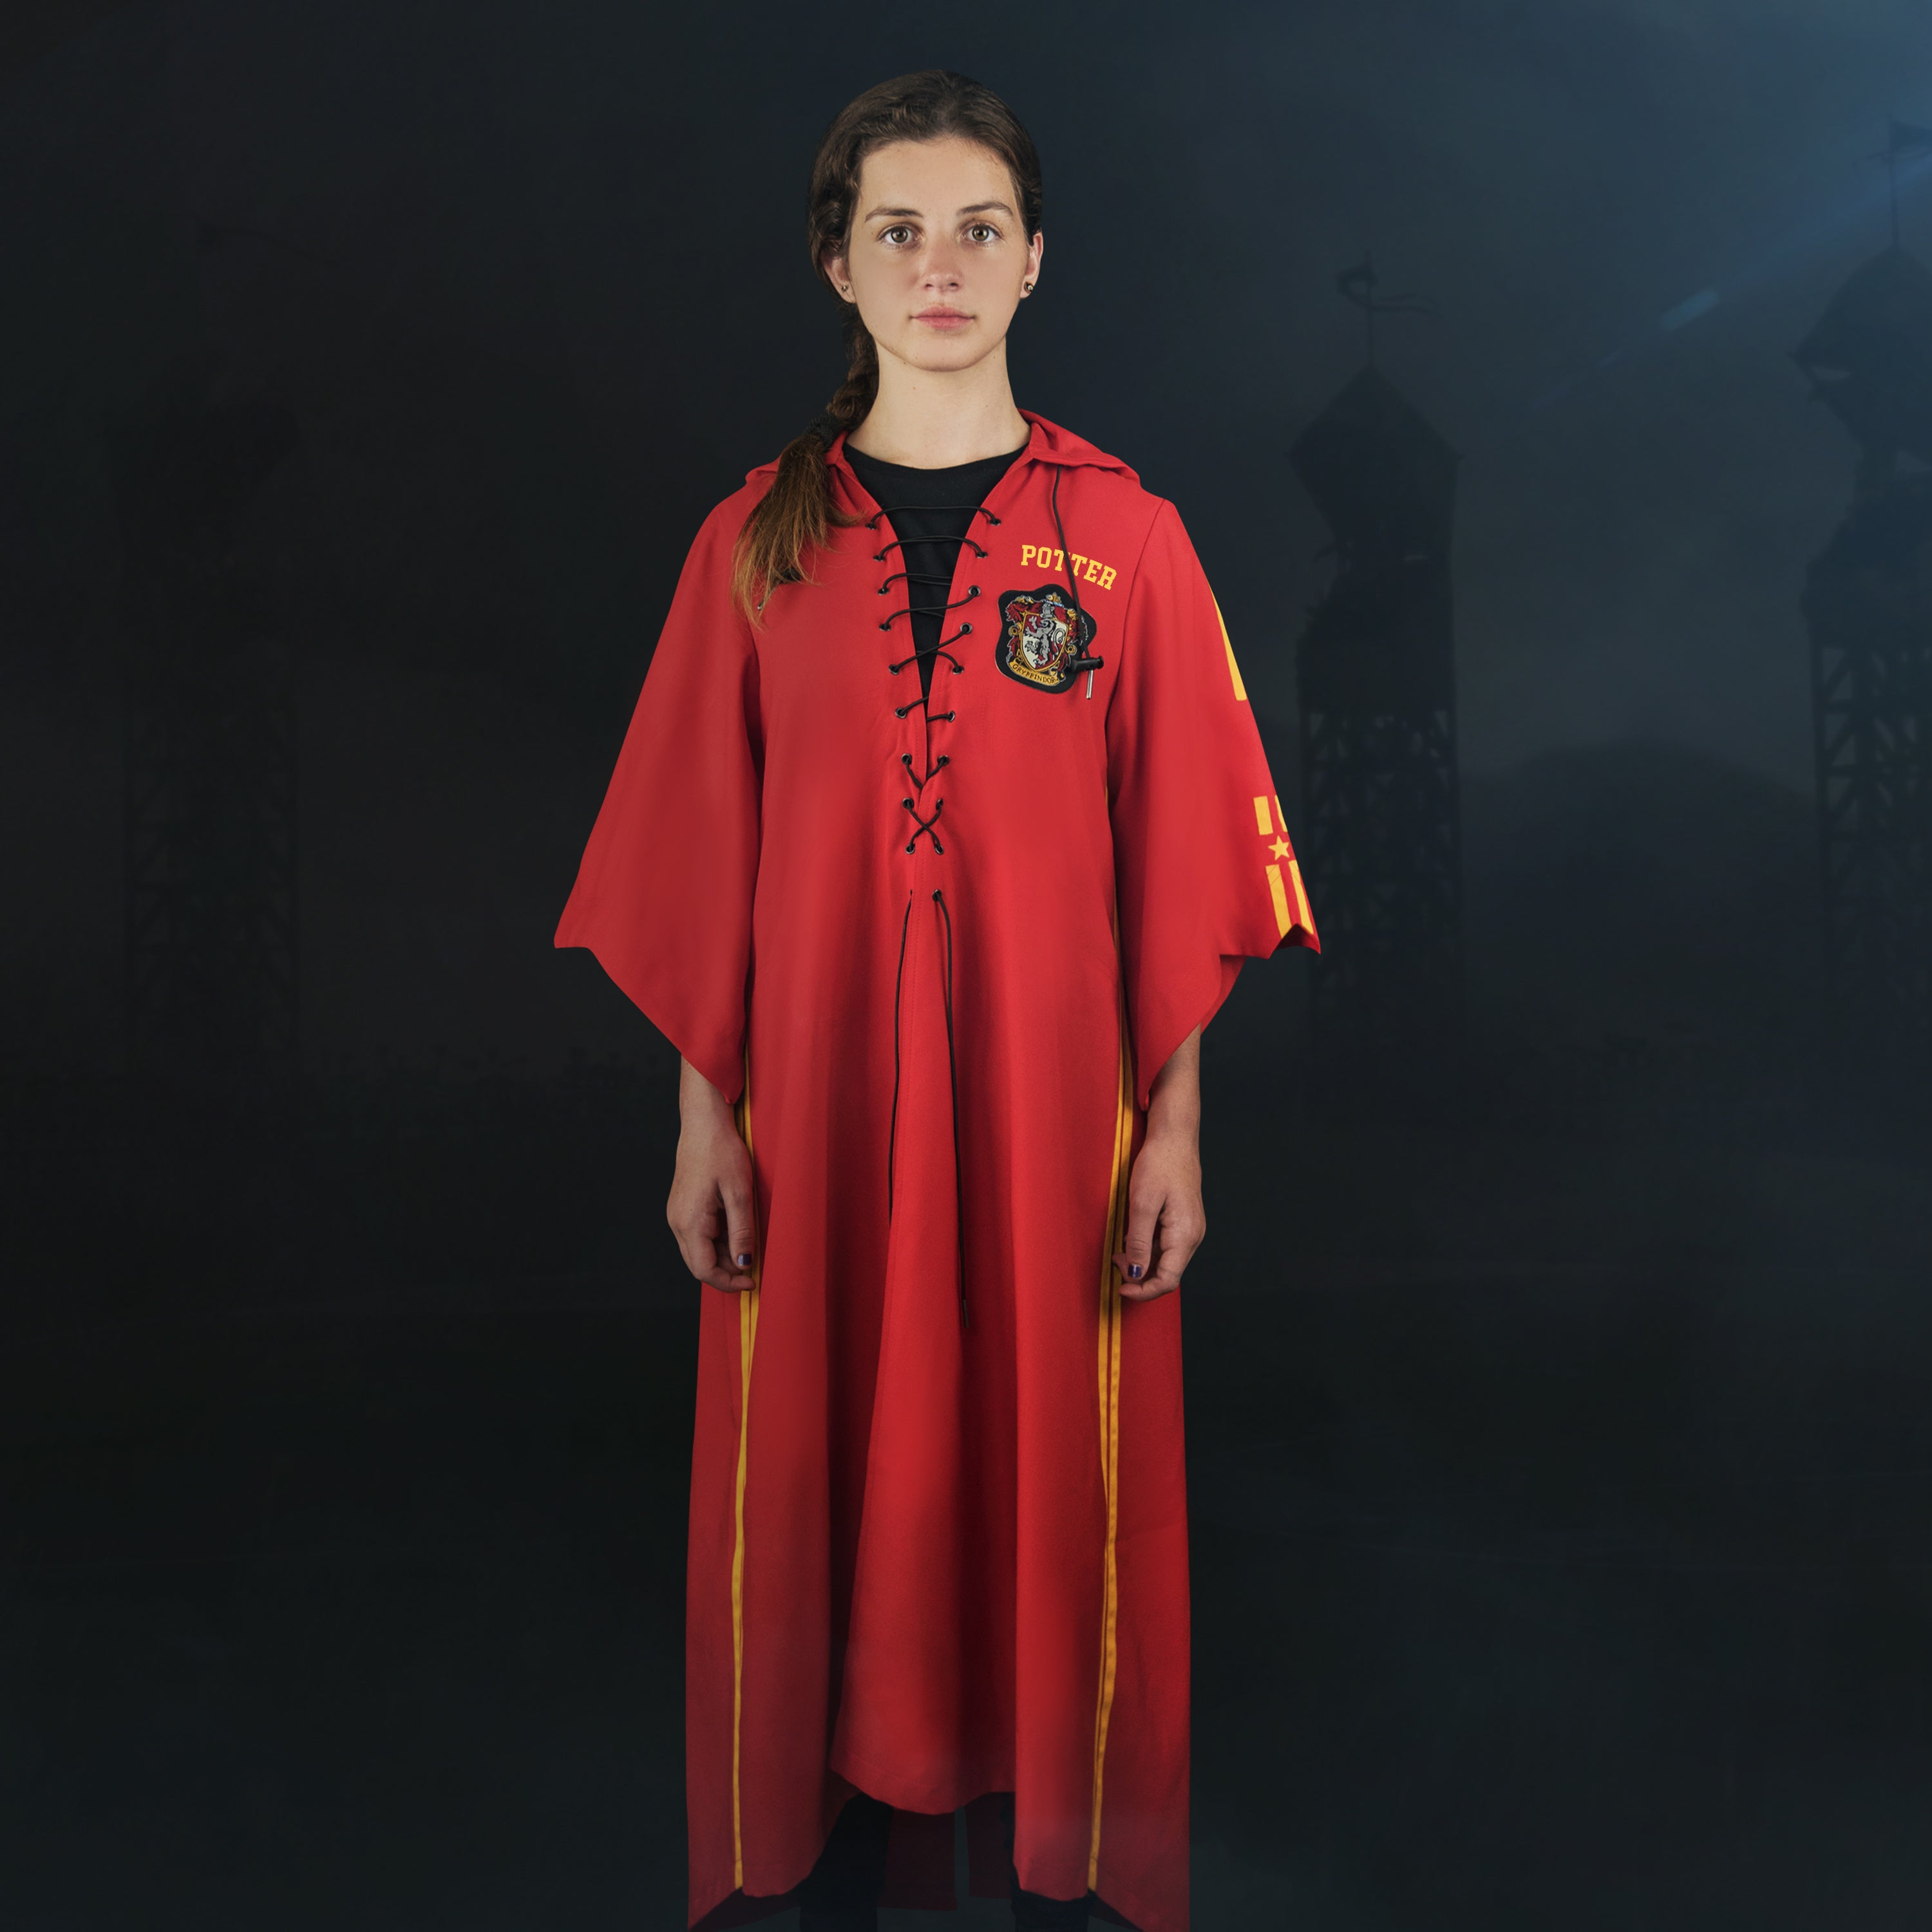 36b159d23 Harry Potter gifts & clothing| Cinereplicas Official Harry Potter Shop –  Cinereplicas USA